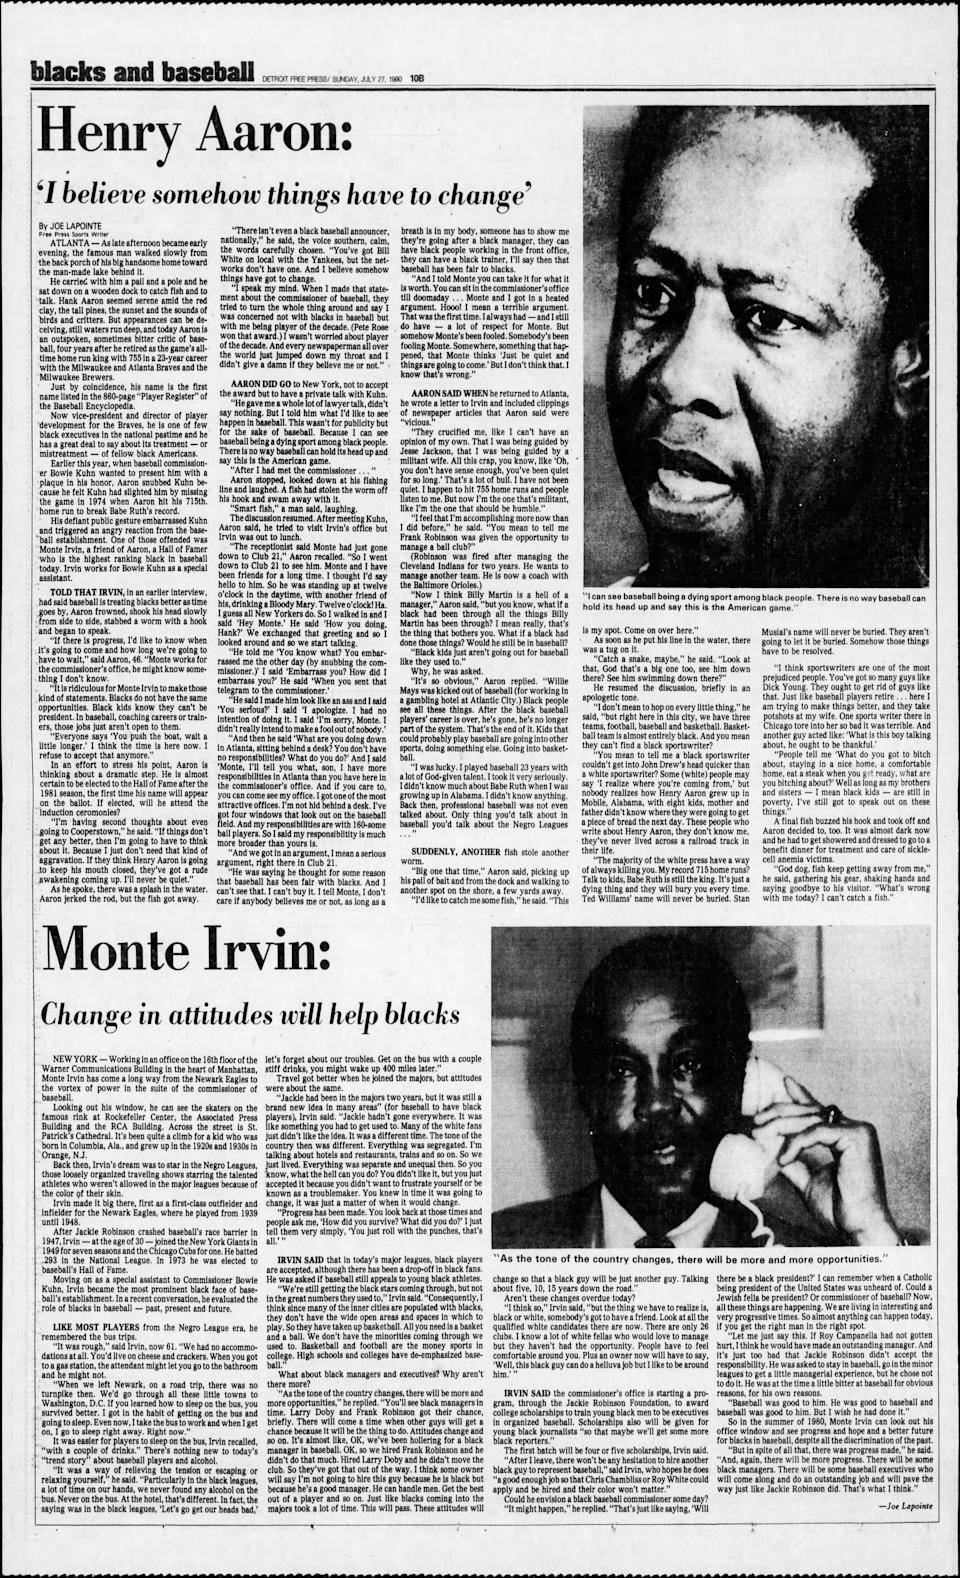 Page 10B of the sports section of the Detroit Free Press on July 27, 1980.